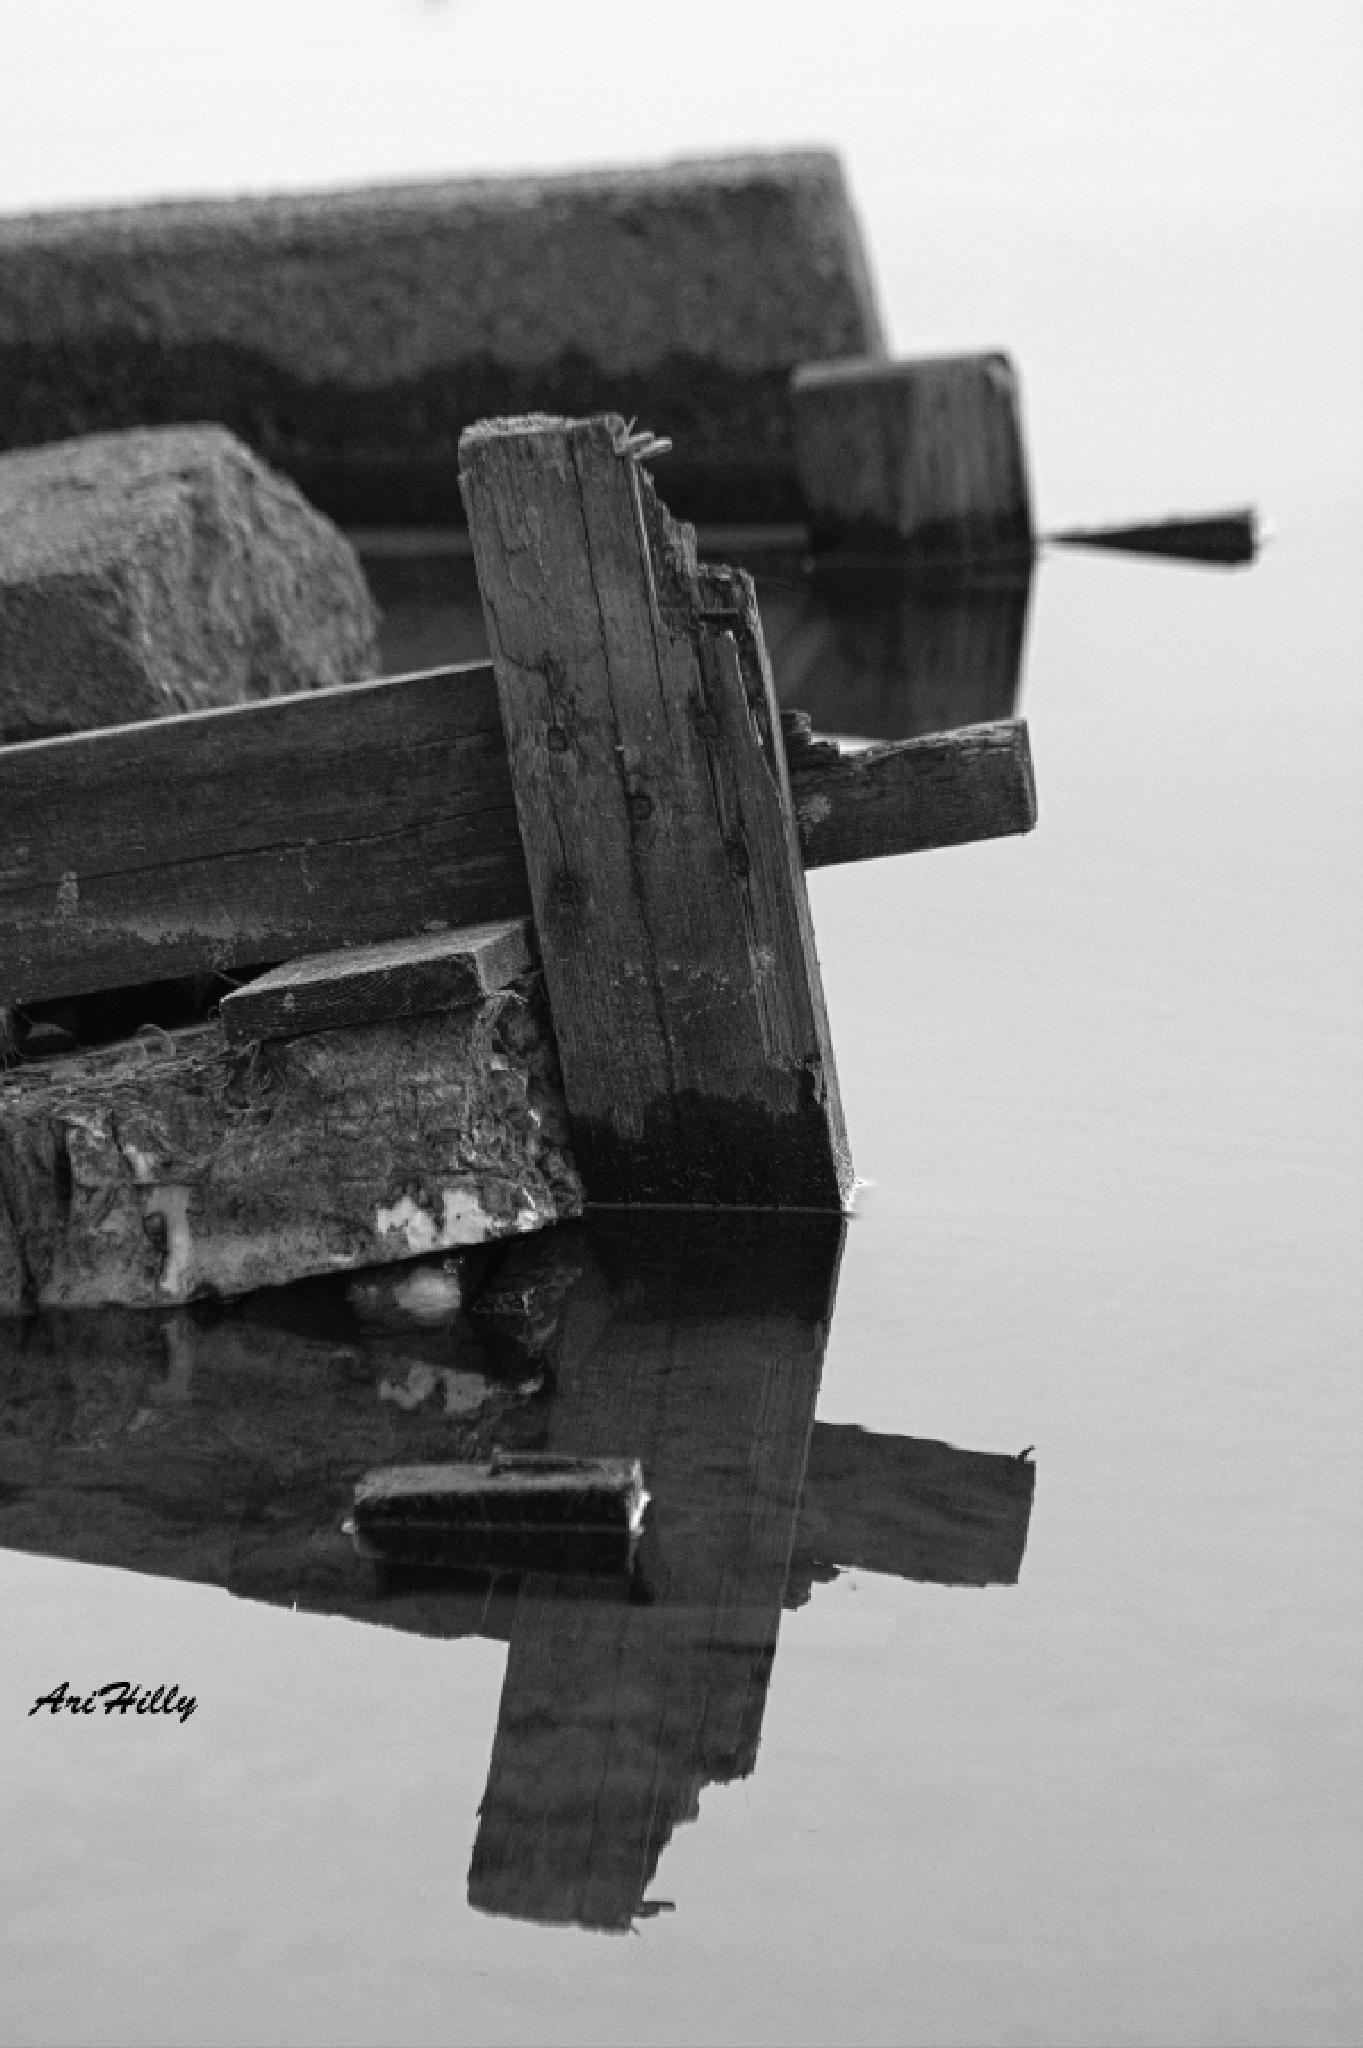 Reflection by AriHilly